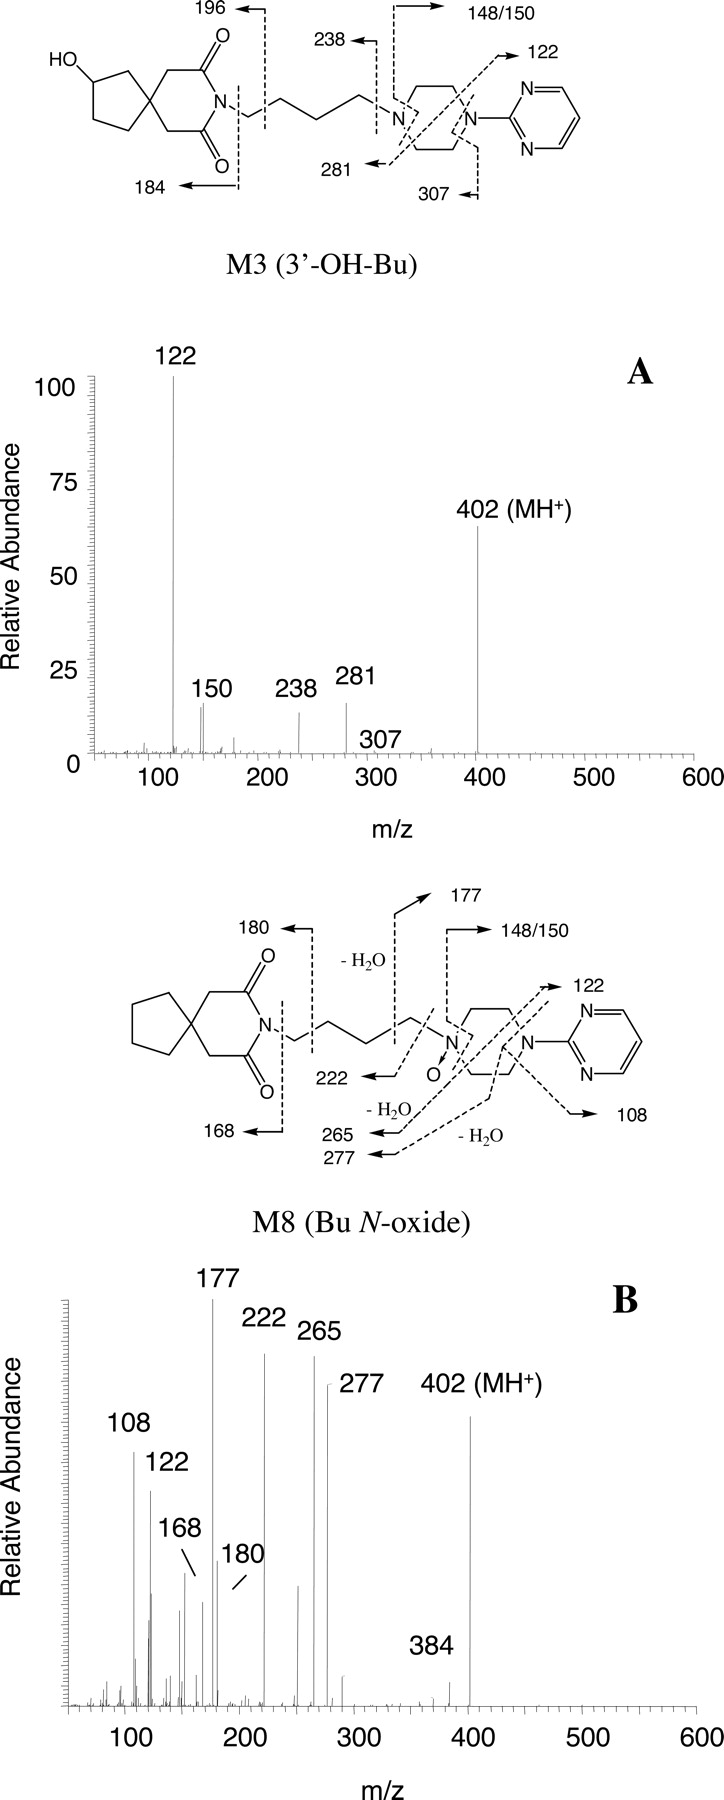 CYTOCHROME P450 3A-MEDIATED METABOLISM OF BUSPIRONE IN HUMAN LIVER